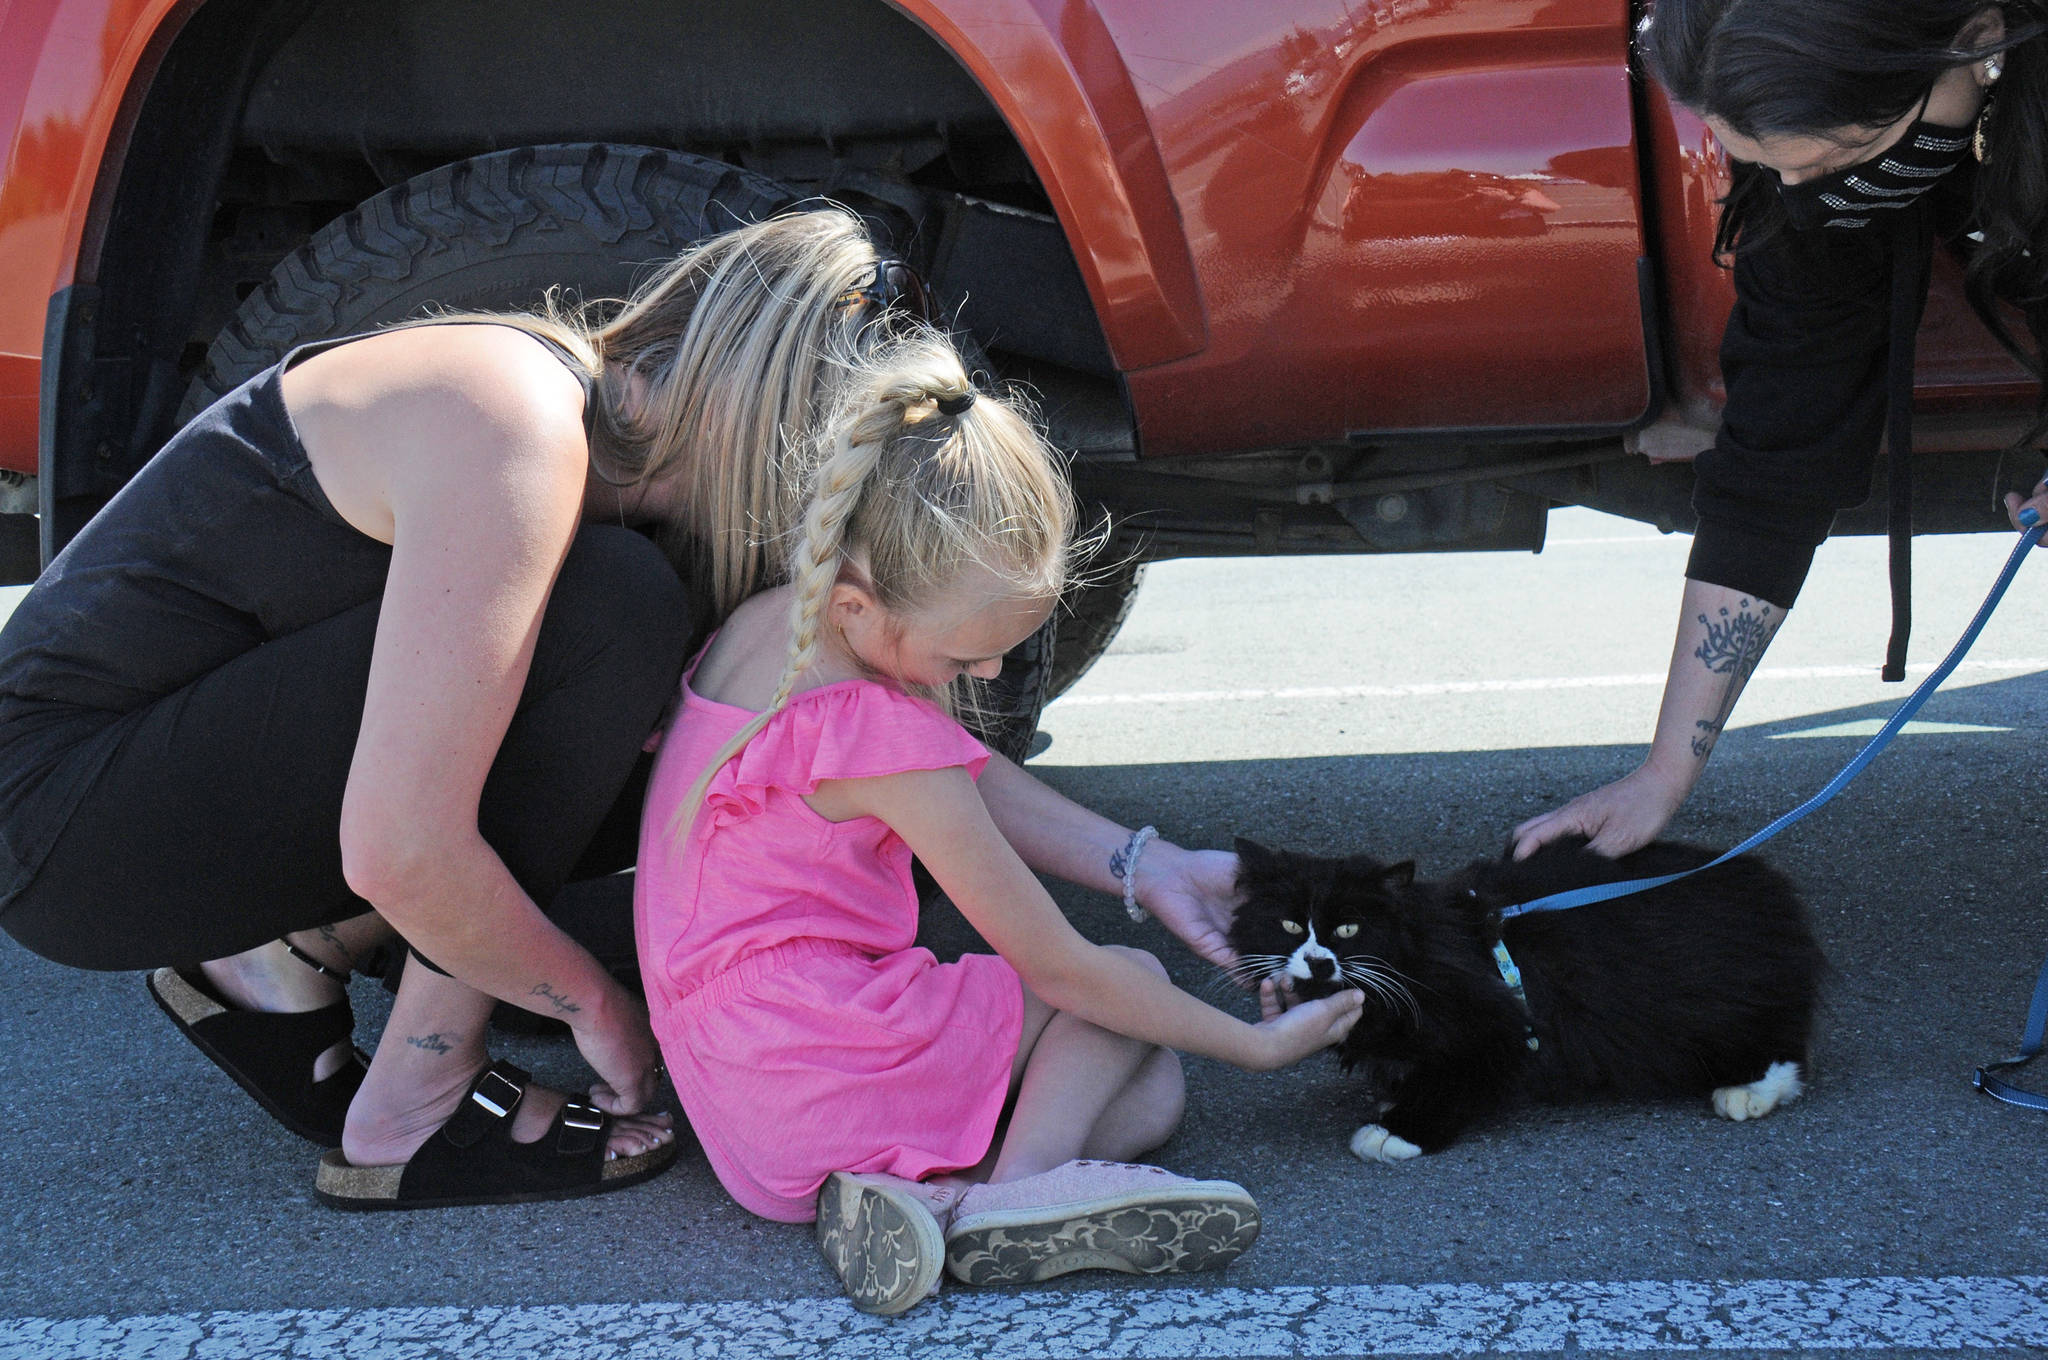 Aria Pendak Jefferson, centre, with her mother Ashley Jefferson, left, meets ChiChi for the first time in two years. Courtney Johnson from Ucluelet, right, rescued ChiChi from a parking lot. (SUSAN QUINN/ Alberni Valley News)